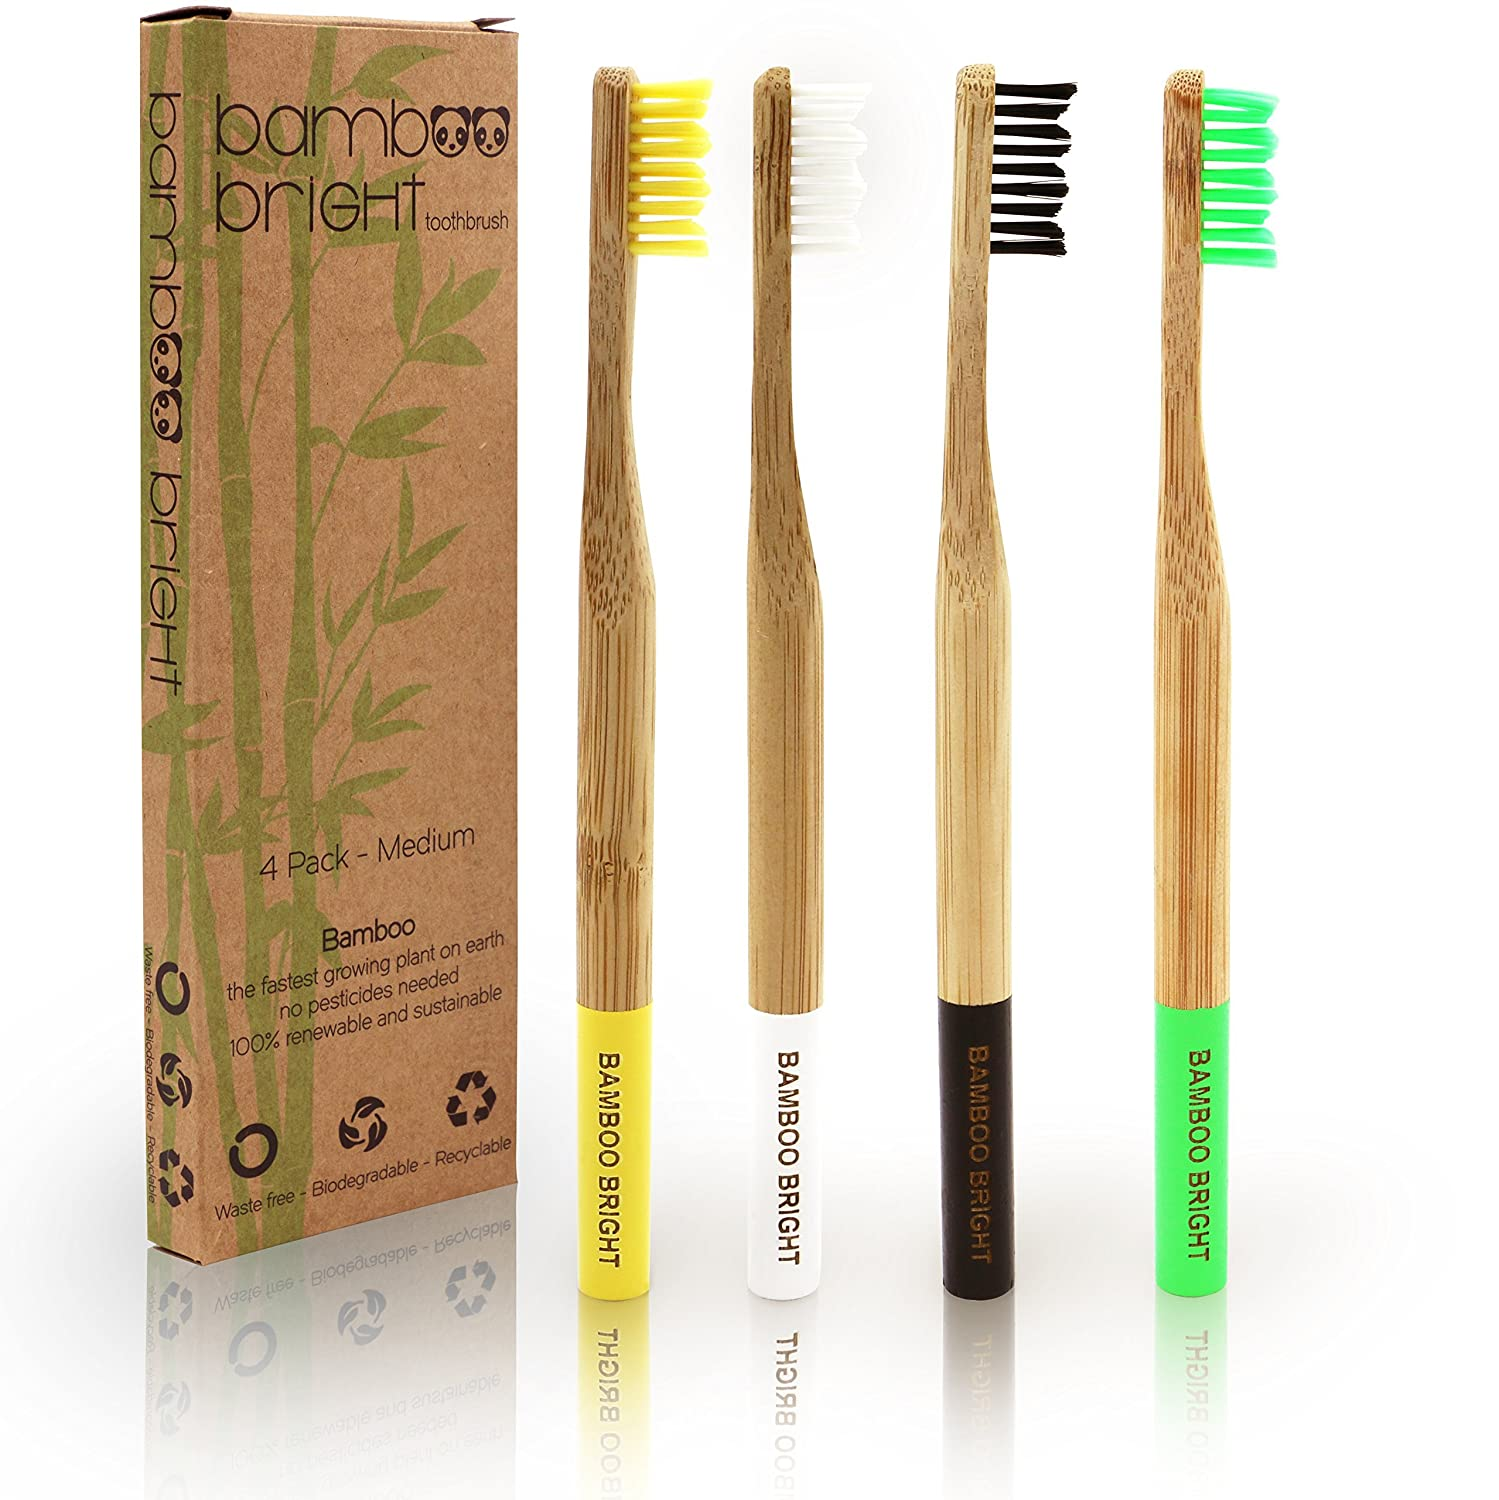 4 Durable Waste Free Bamboo Toothbrushes By Bamboo Bright | Medium Soft | Minimal Packaging | Biodegradable And Sustainable, Bpa Free Brushes | Great For Families   4 Different Colours | Luxury Feel | Long Lasting And Guaranteed! by Amazon